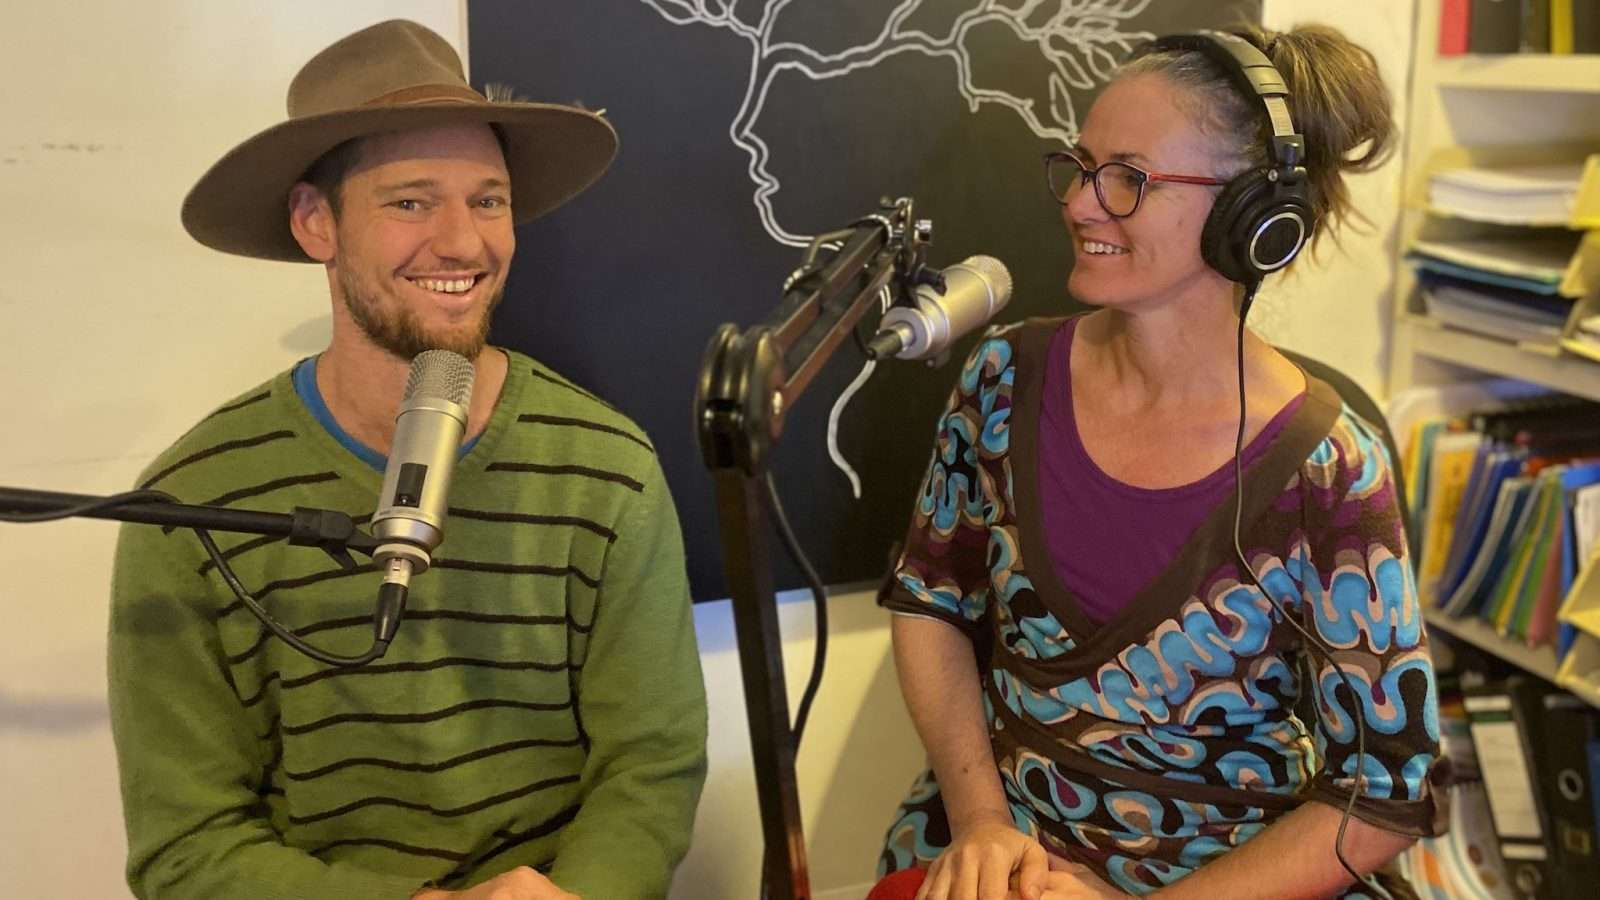 Charlie MGee and Fiona Sinclair recording Creative Mycelium podcast episode